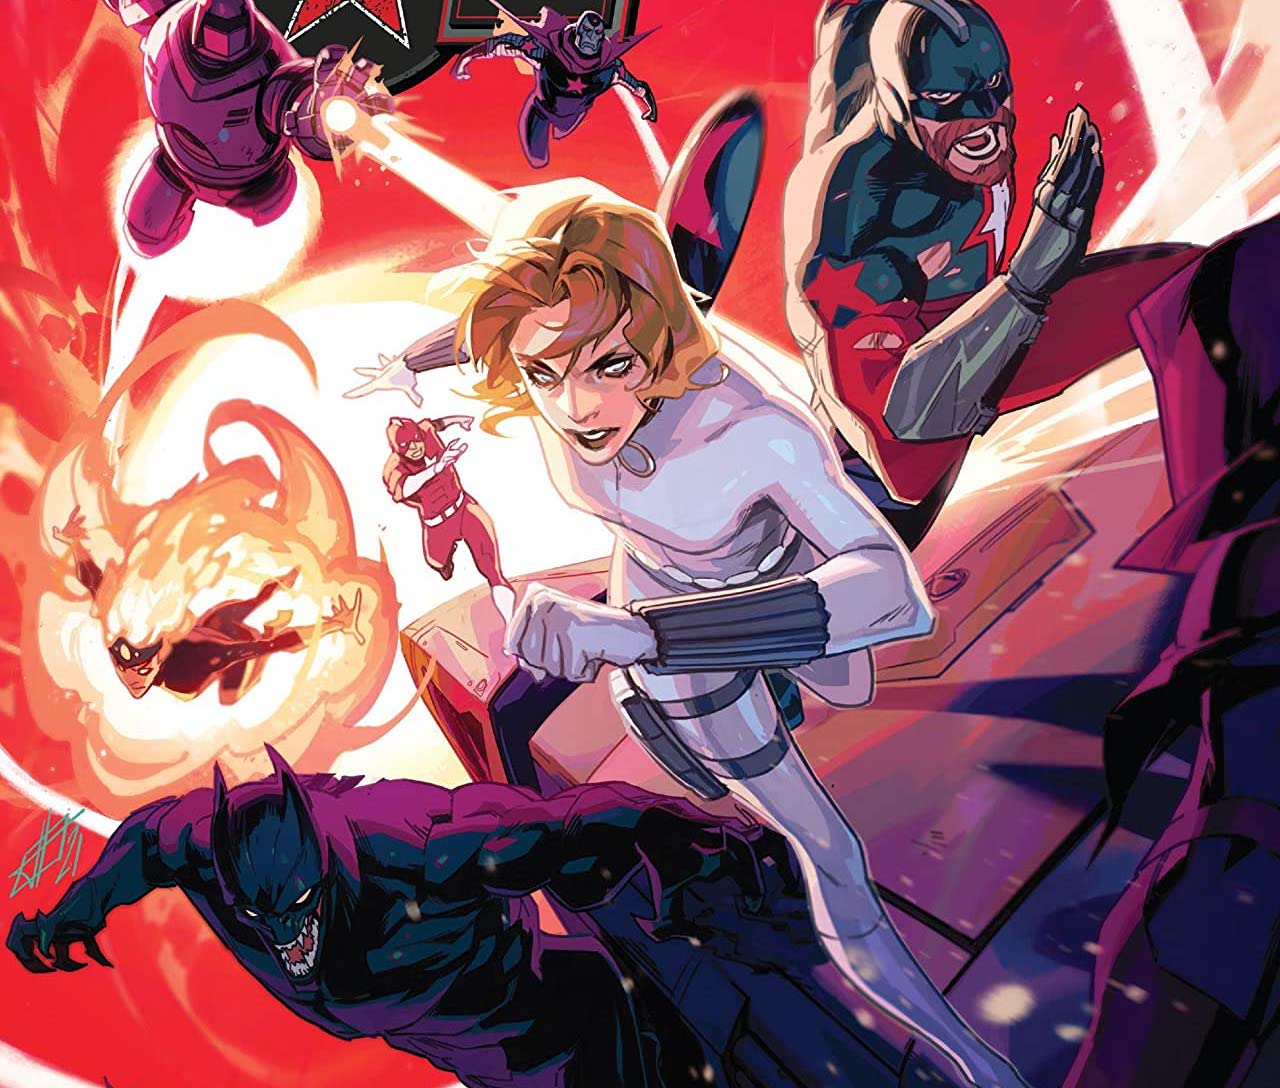 'Winter Guard' #1 offers up a great super spy vs. super power story